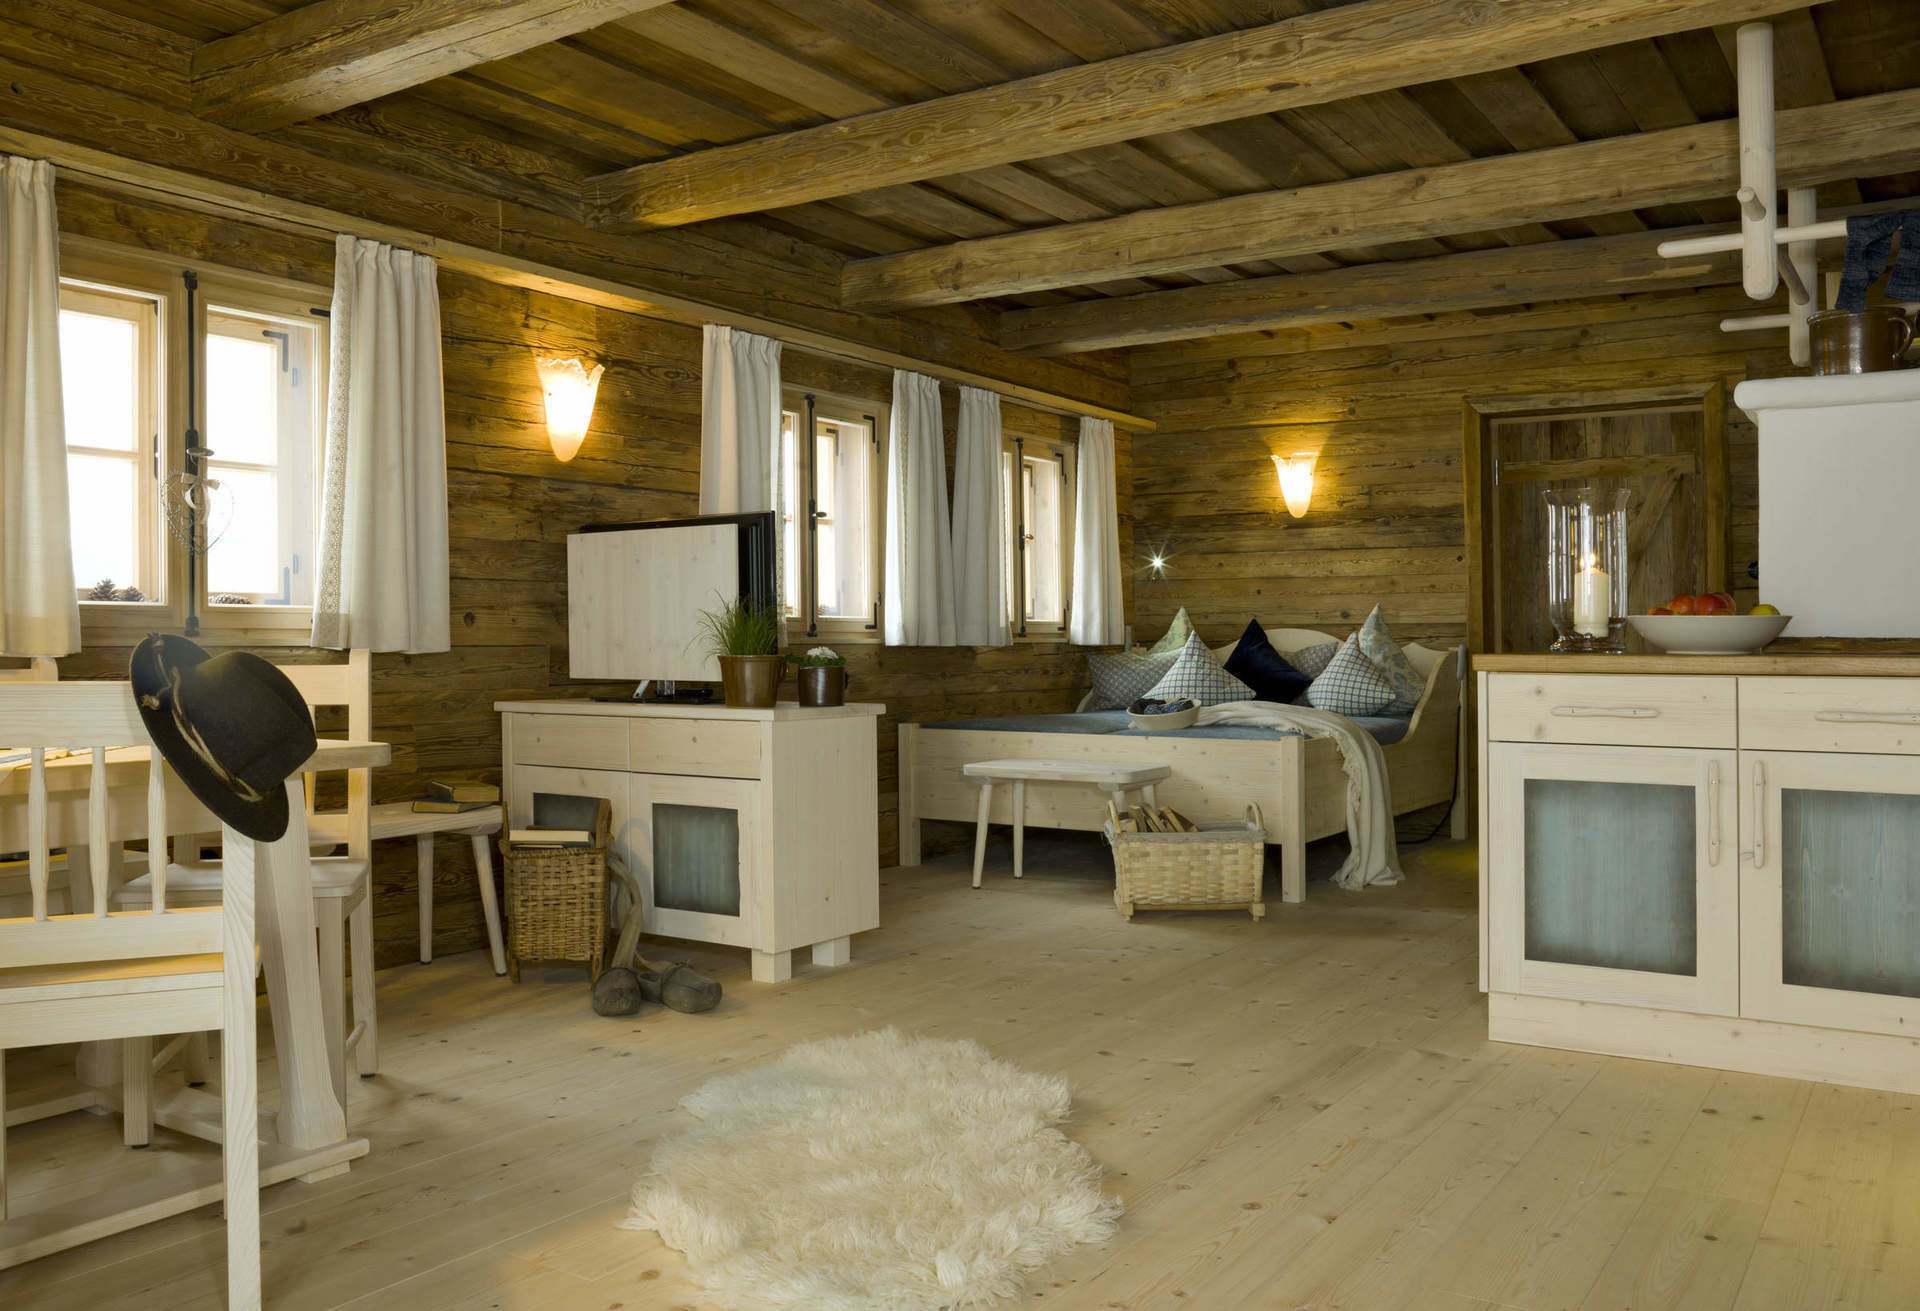 luxus chalets in bayern exklusive luxus chalets. Black Bedroom Furniture Sets. Home Design Ideas